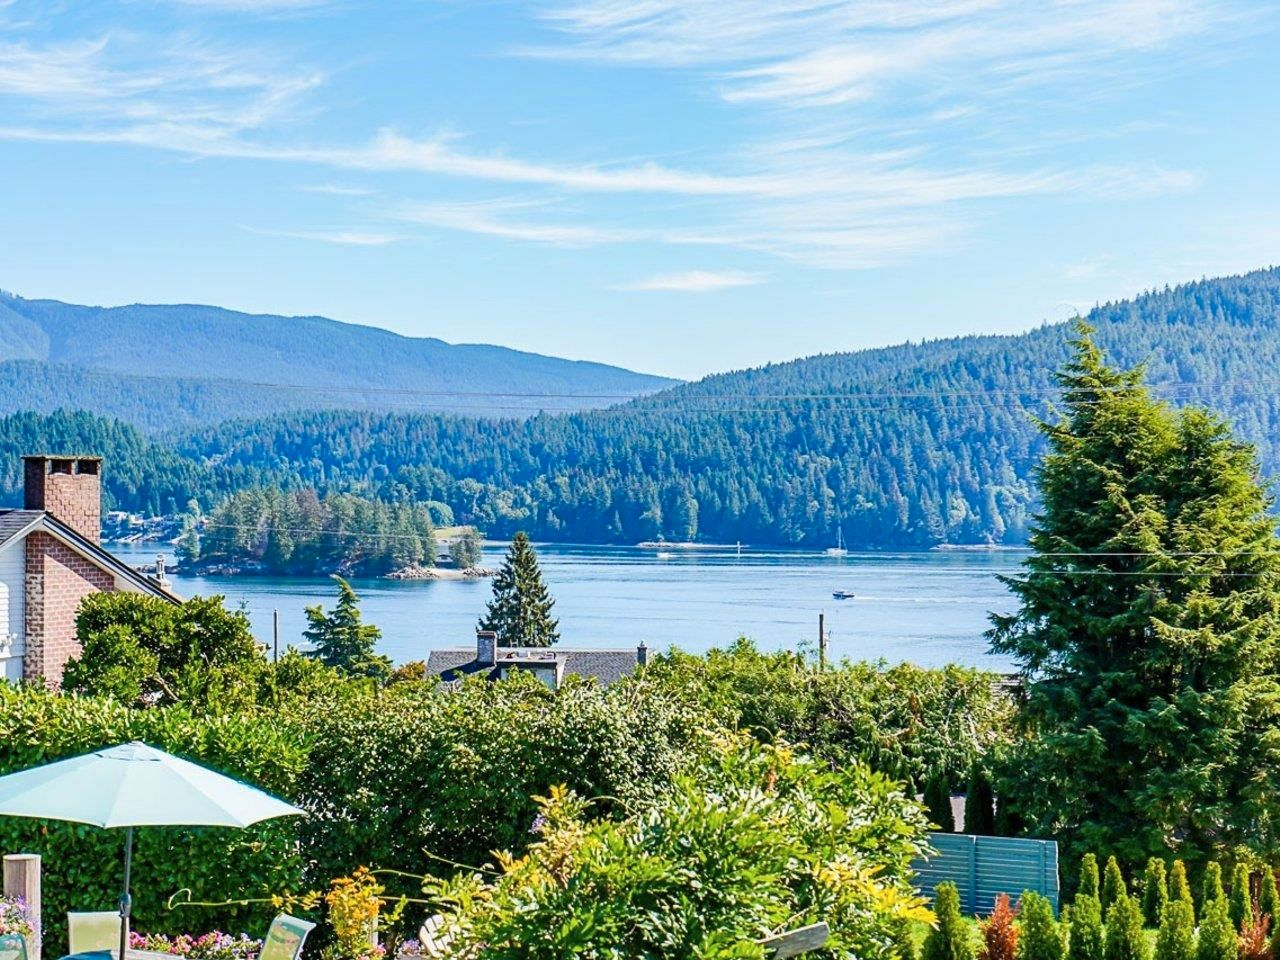 Main Photo: 612 BAYCREST Drive in North Vancouver: Dollarton House for sale : MLS®# R2616316